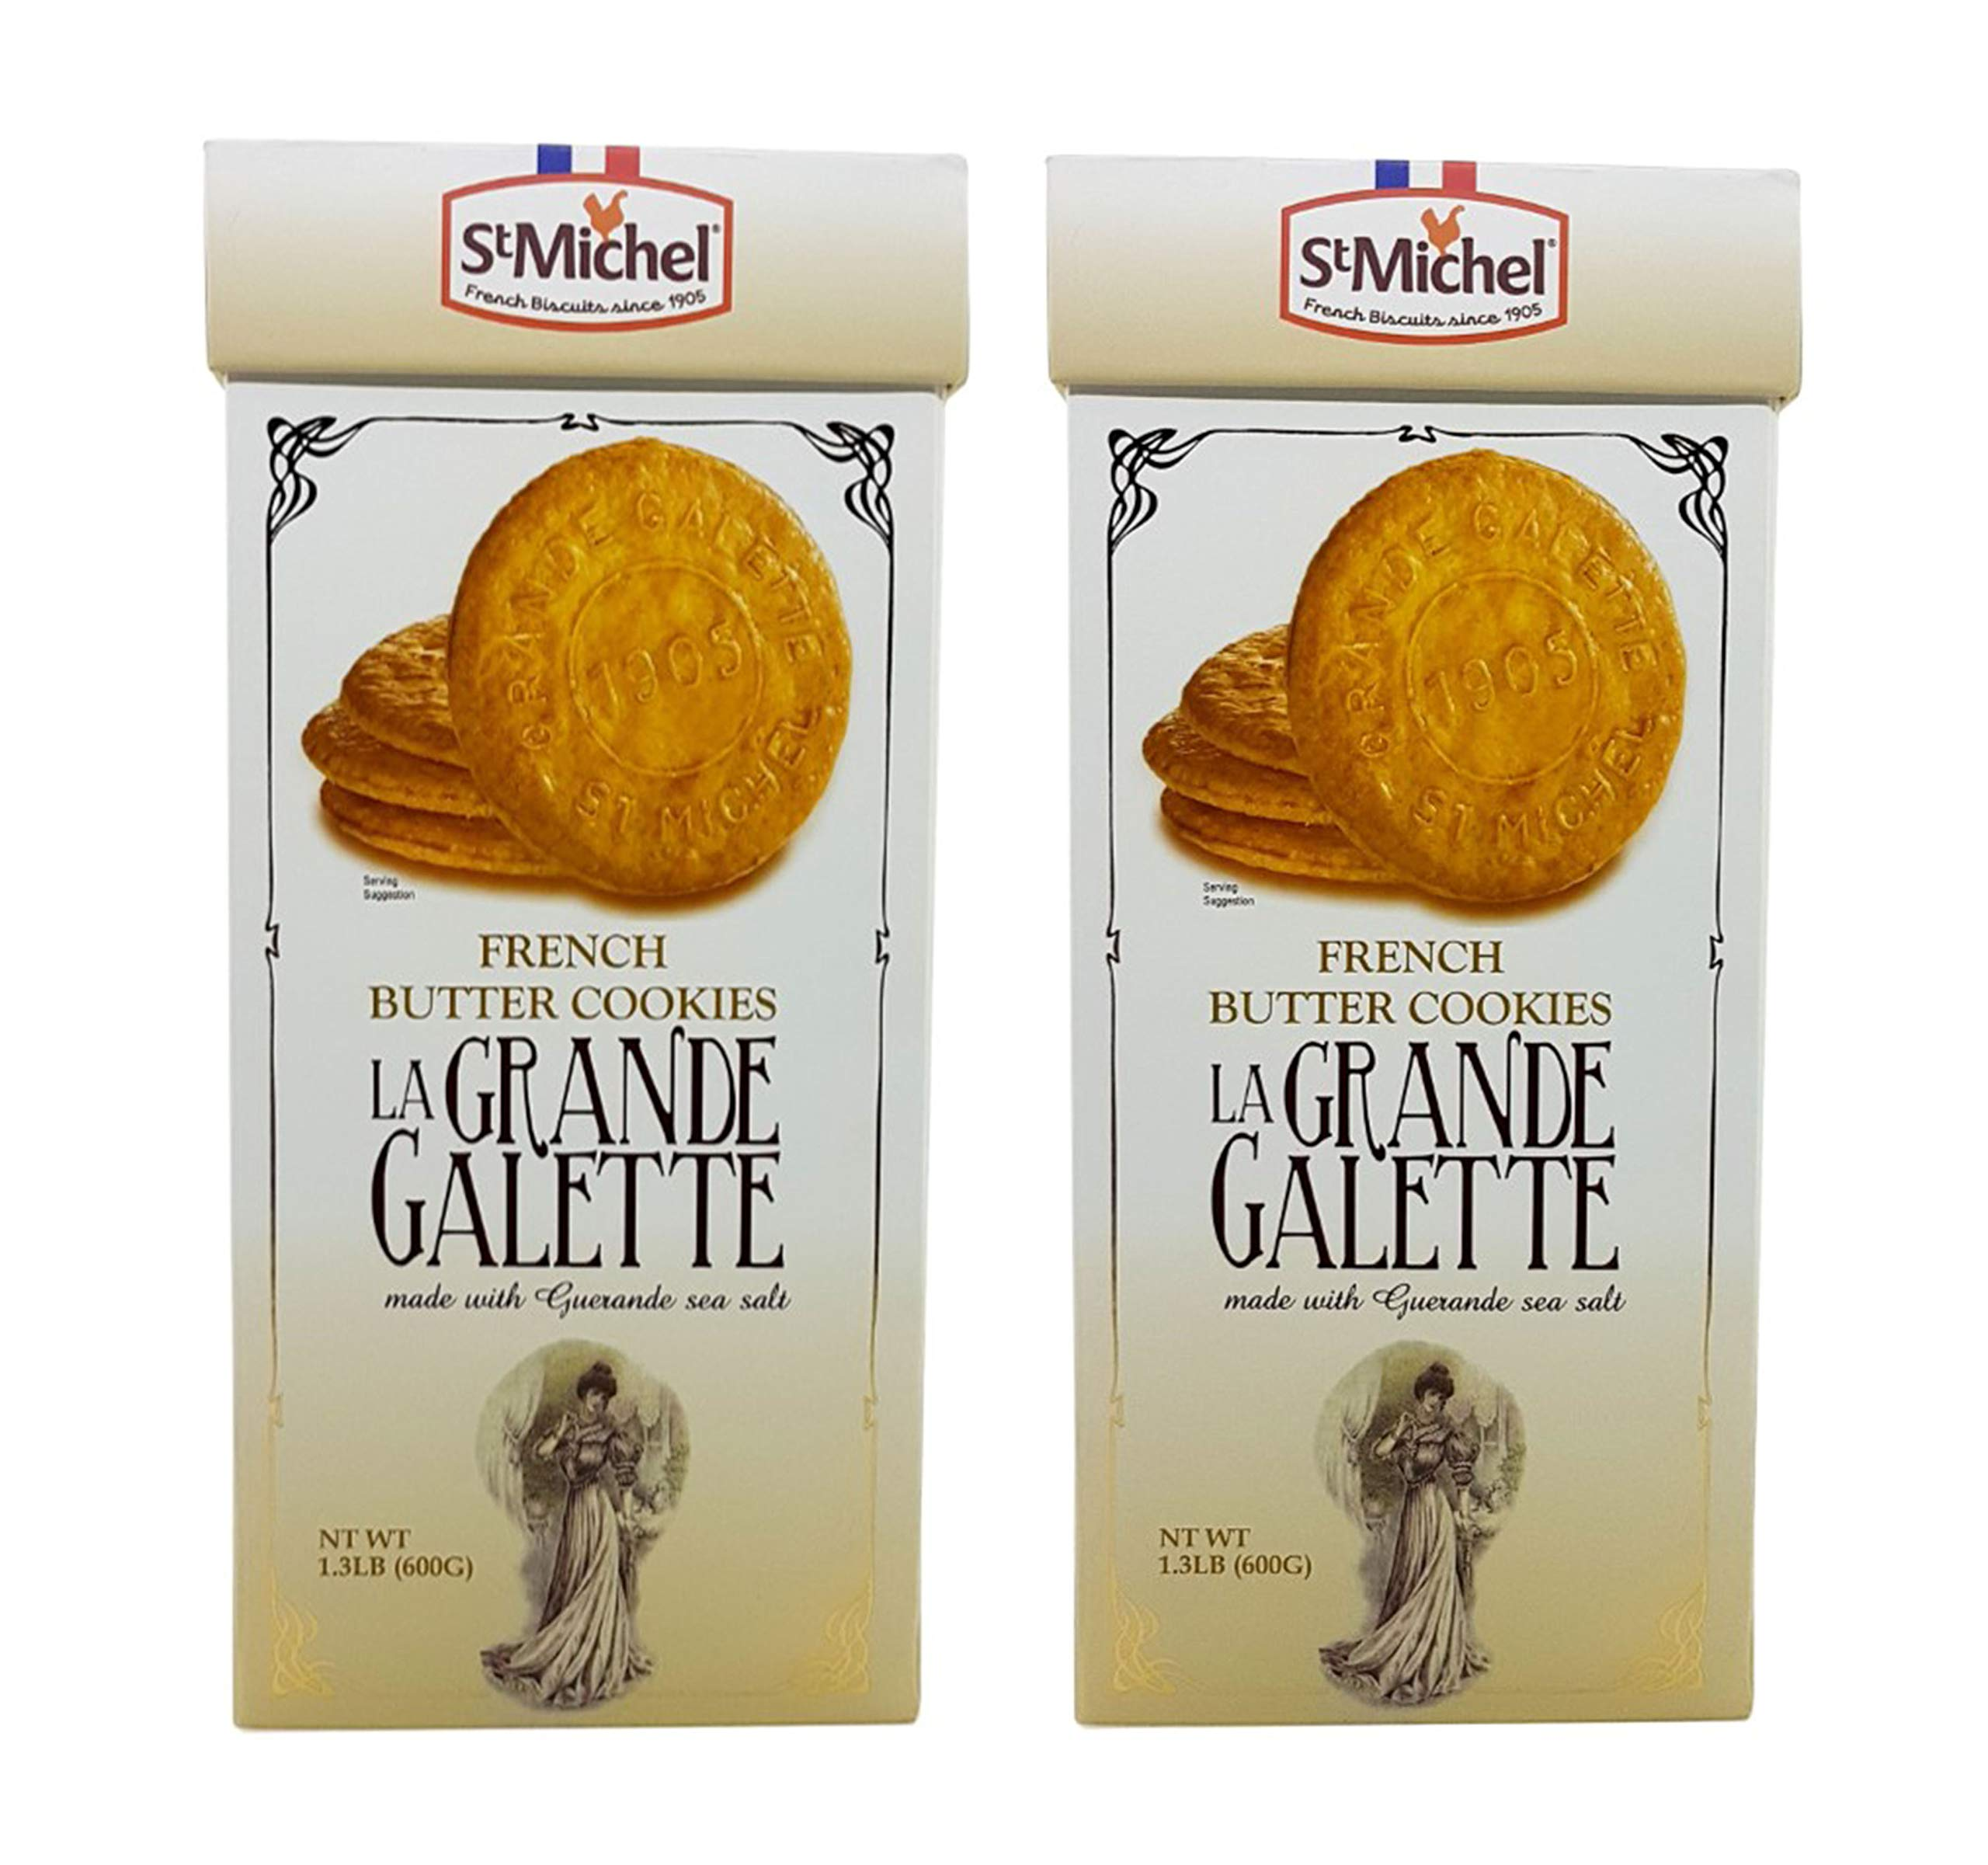 St Michel La Grande Galette French Butter Cookies Biscuits 1.3 LB (Pack of 2) by St Michel (Image #1)